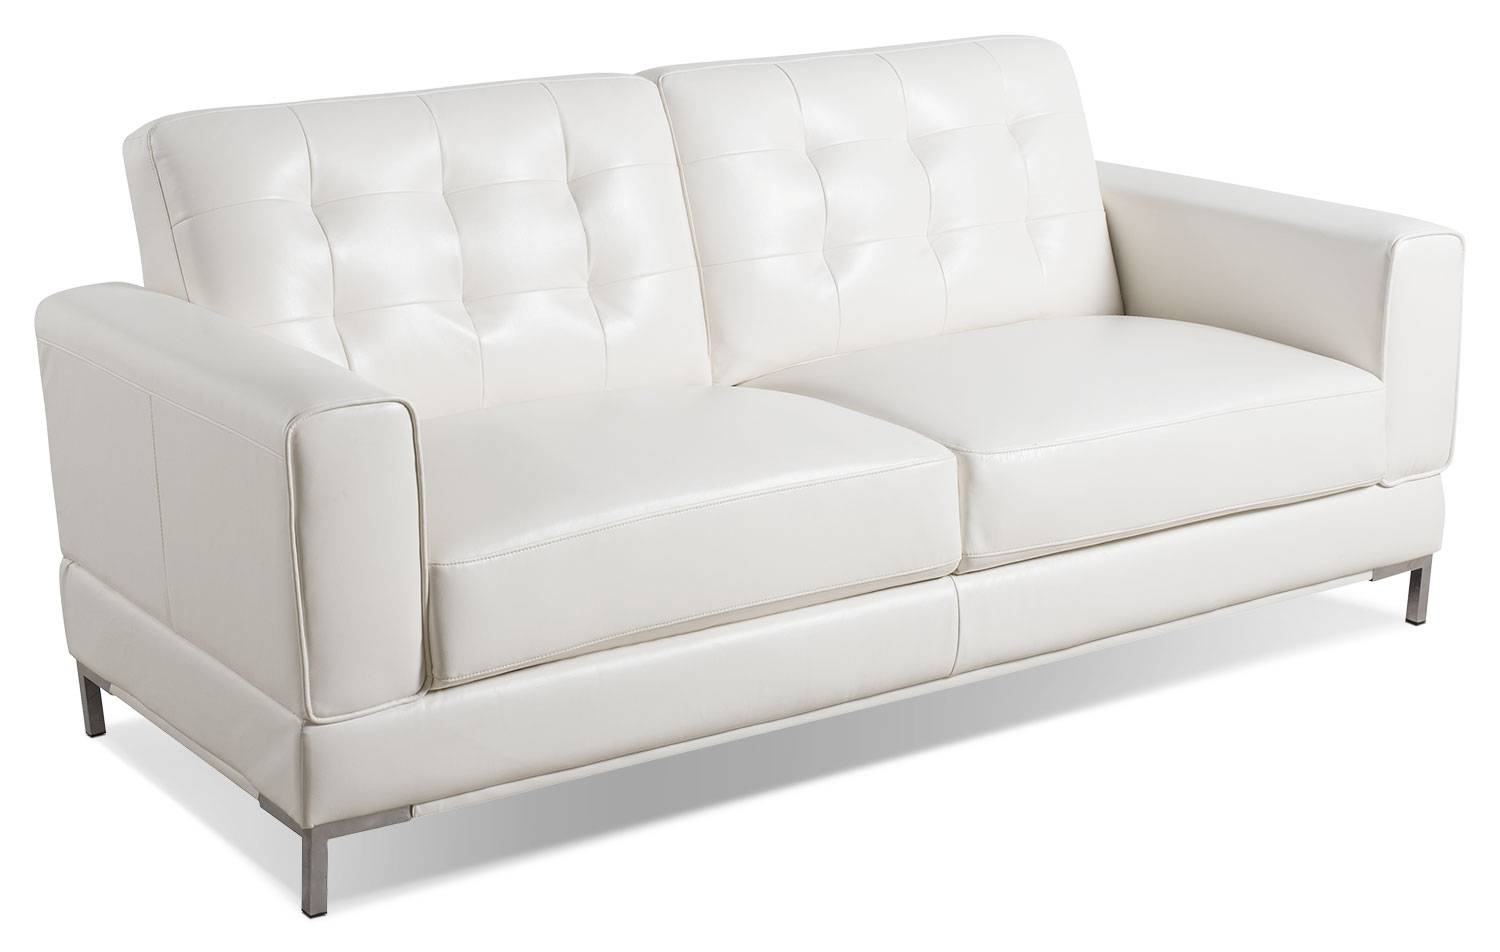 Myer Leather-Look Fabric Sofa - Cream | The Brick throughout The Brick Leather Sofa (Image 18 of 30)